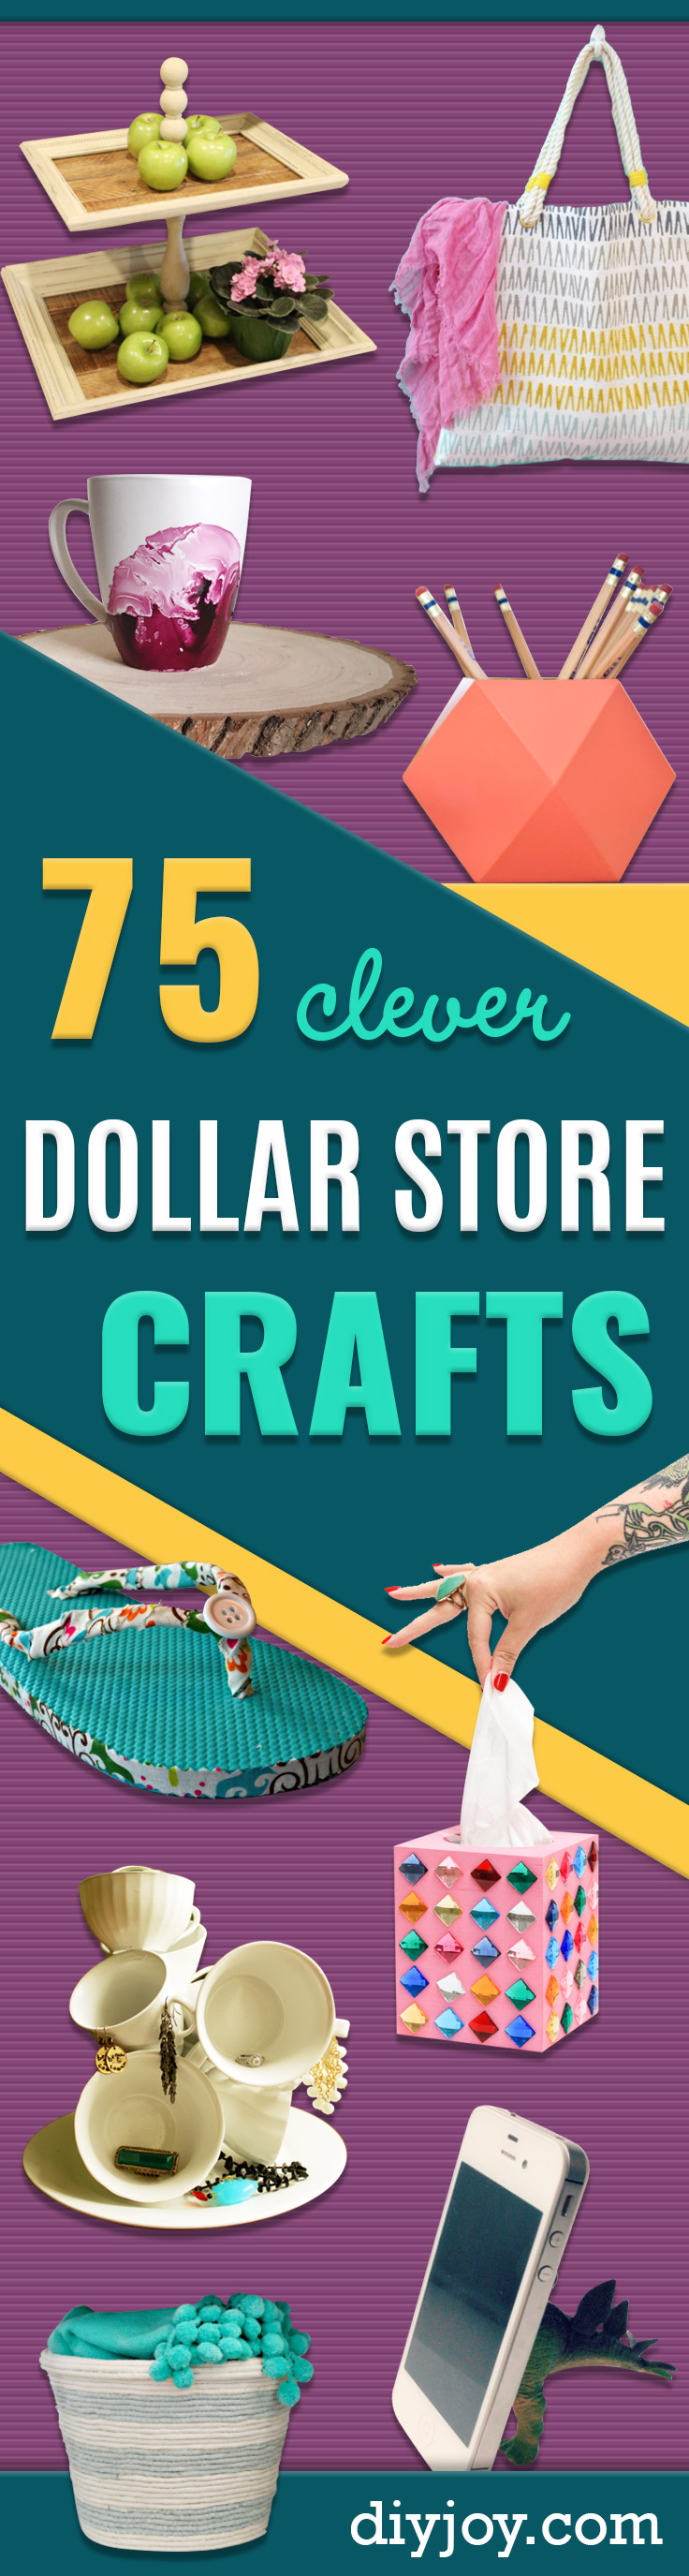 Dollar Store Crafts Best Cheap Diy Dollar Store Craft Ideas For Kids Teen